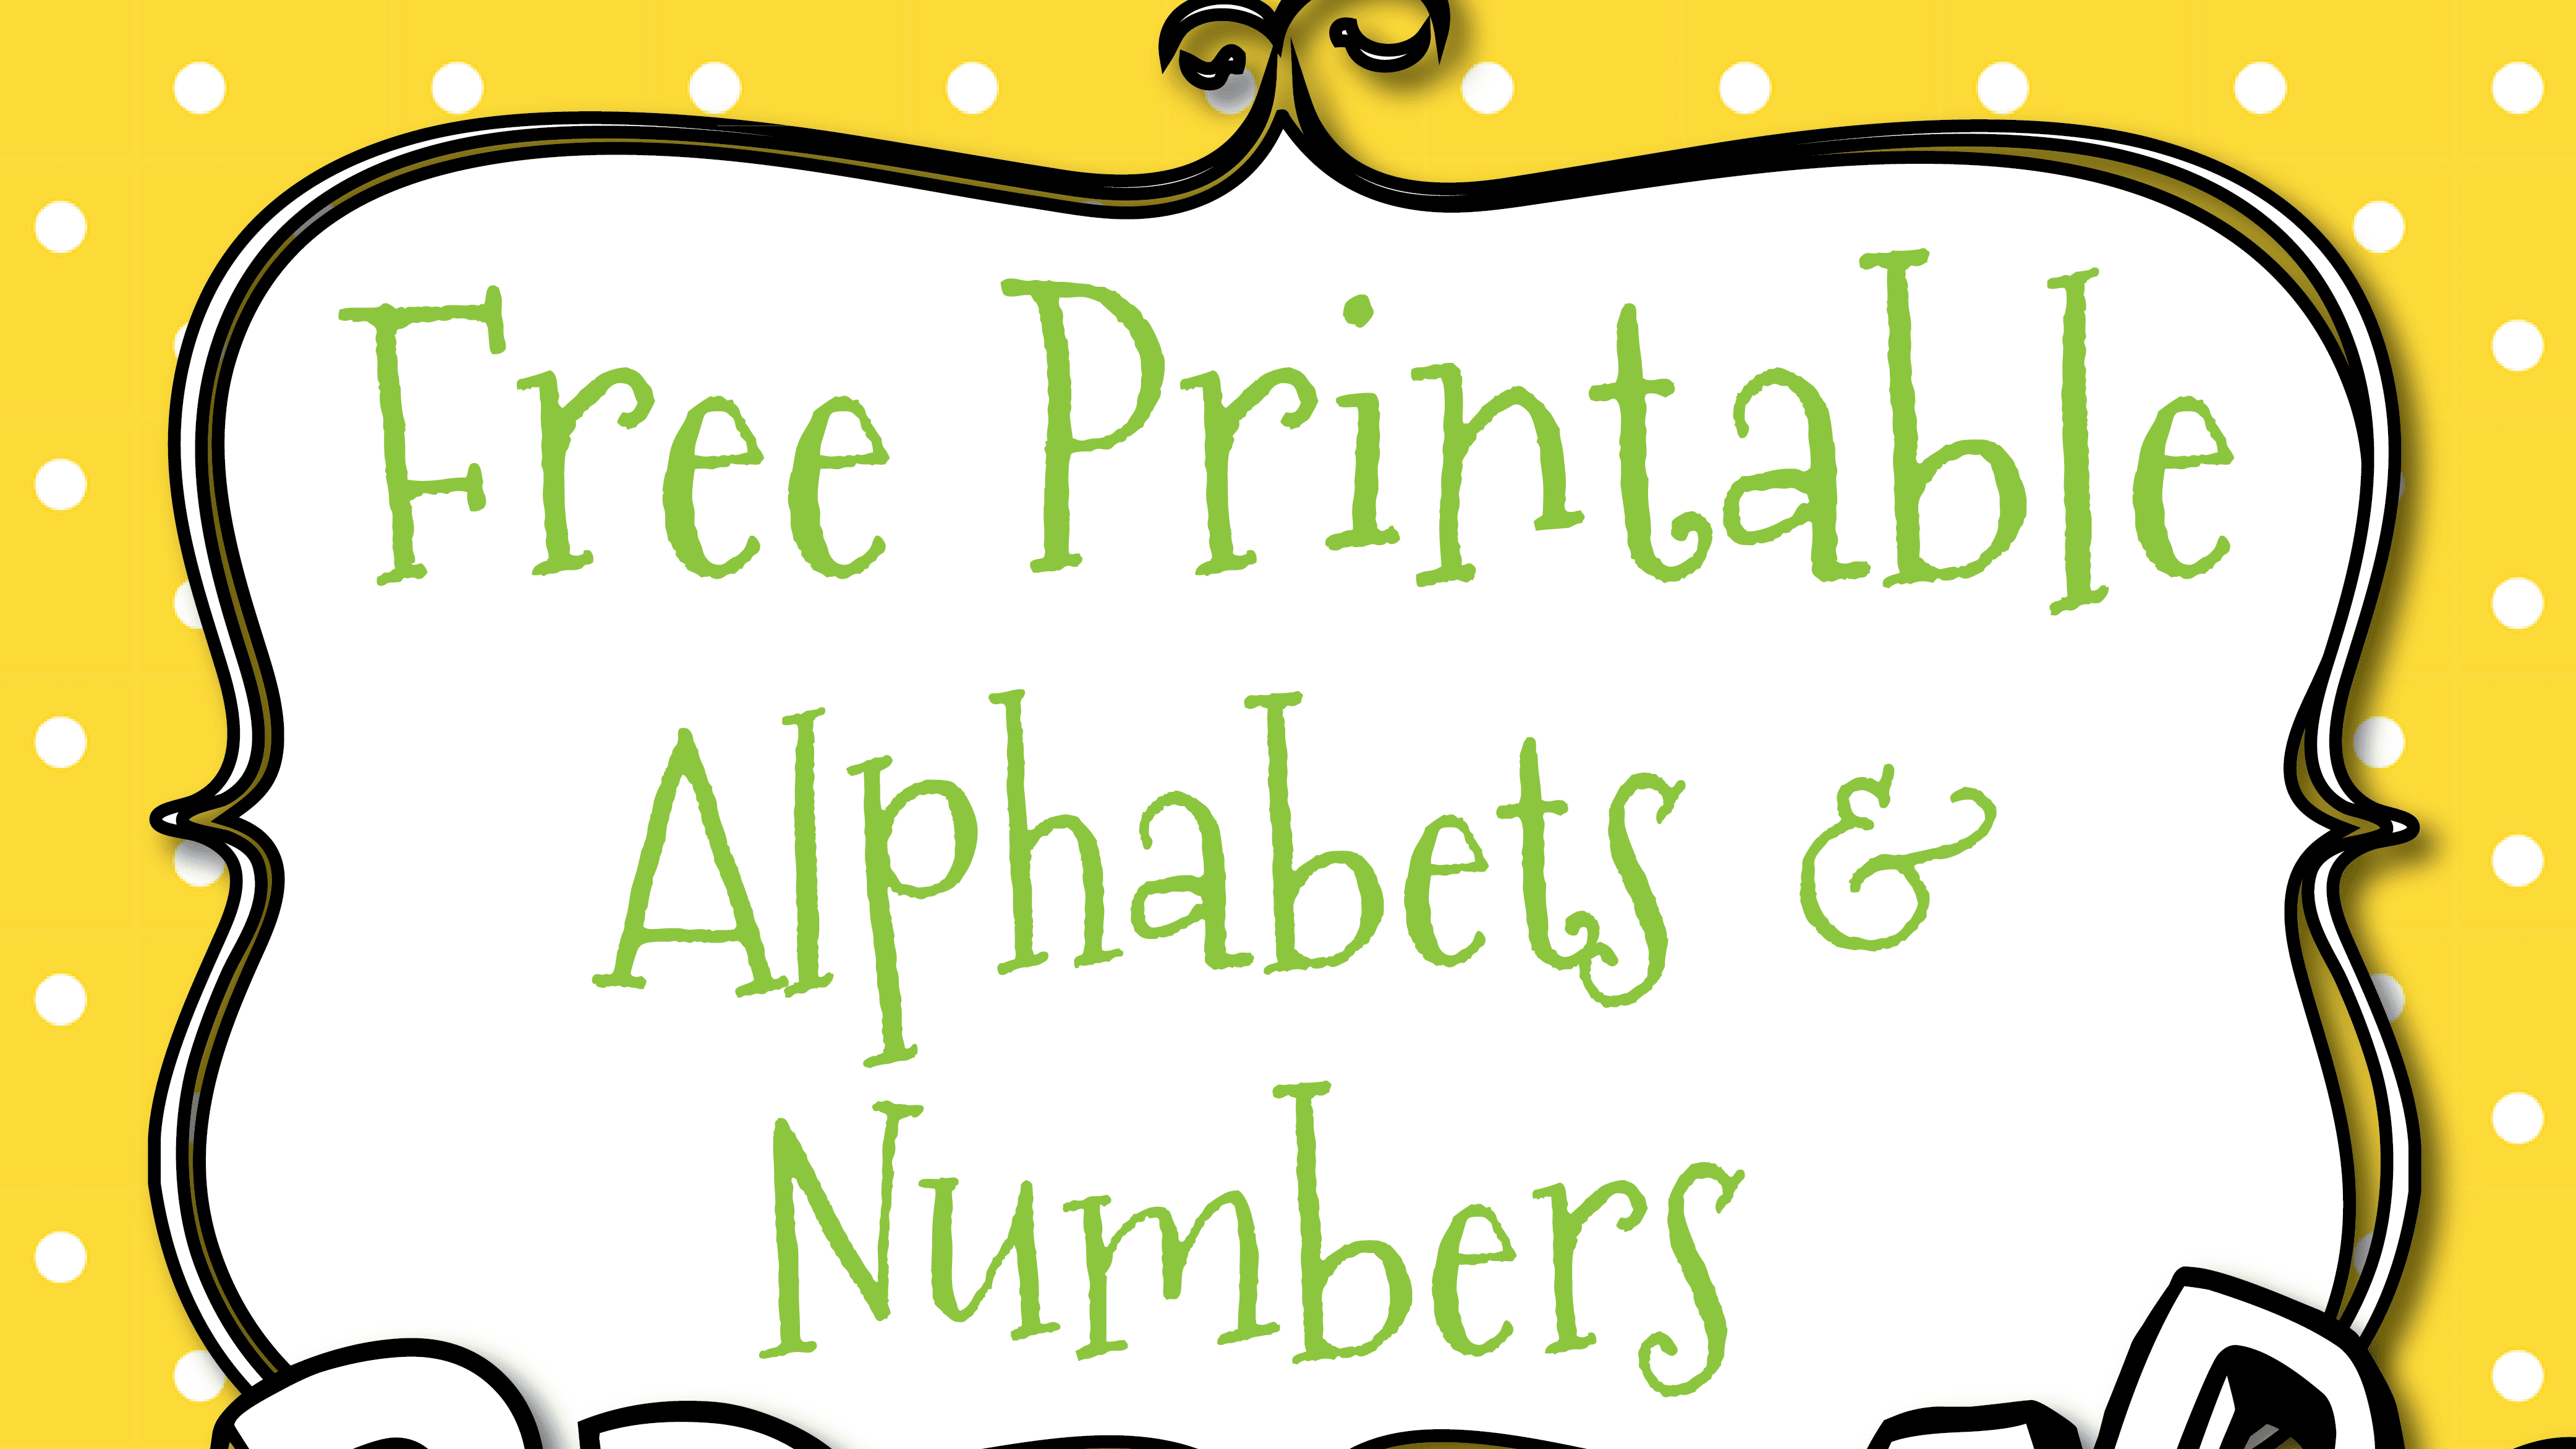 Free Printable Letters And Numbers For Crafts - Free Printable Bubble Numbers